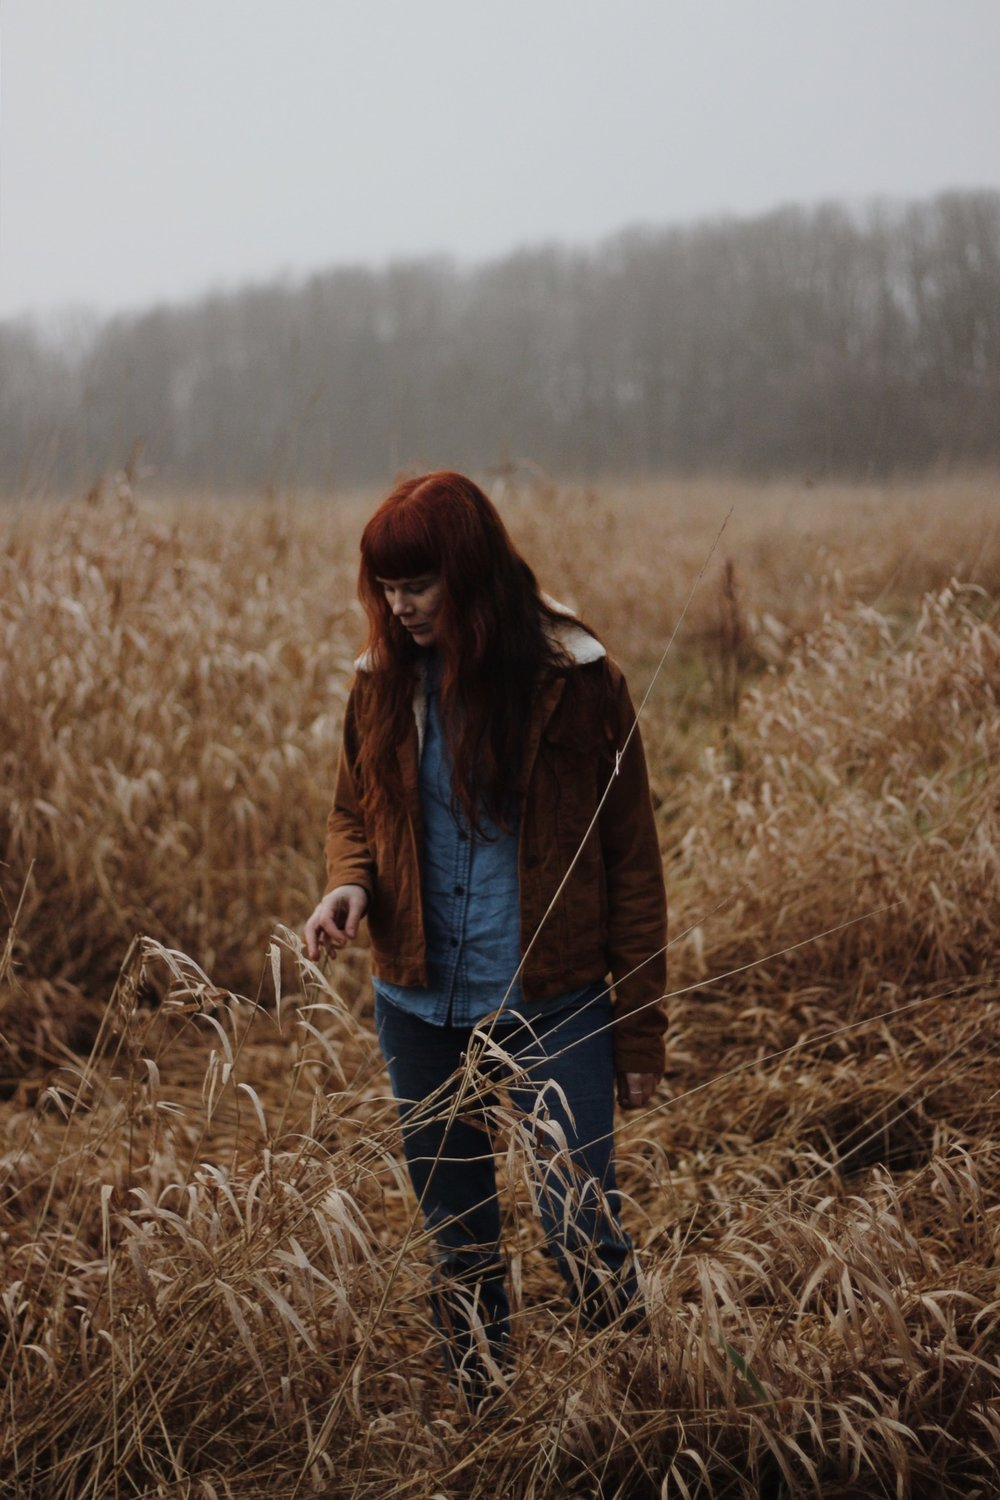 Girl in field in mist